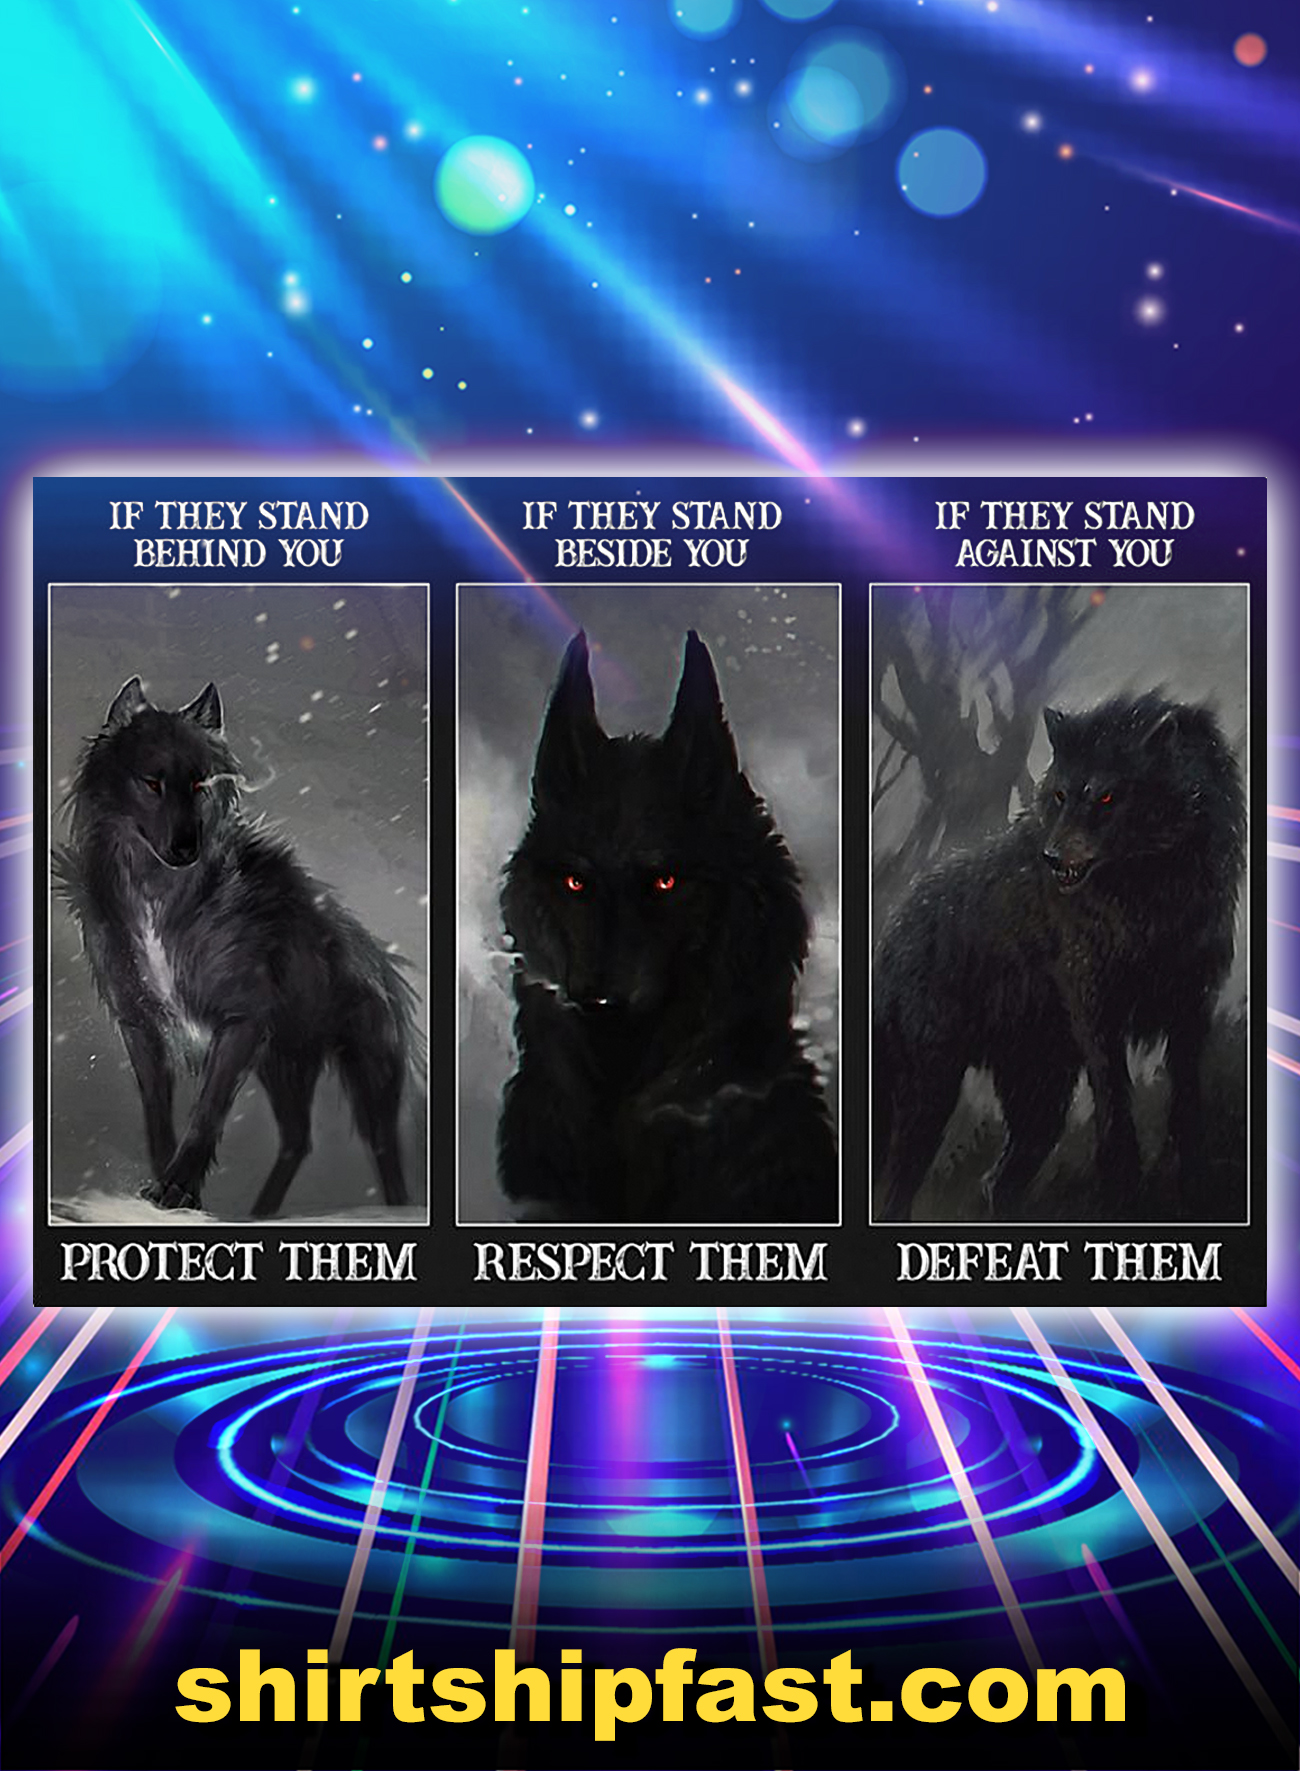 Wolf if they stand behind you protect them poster - A4